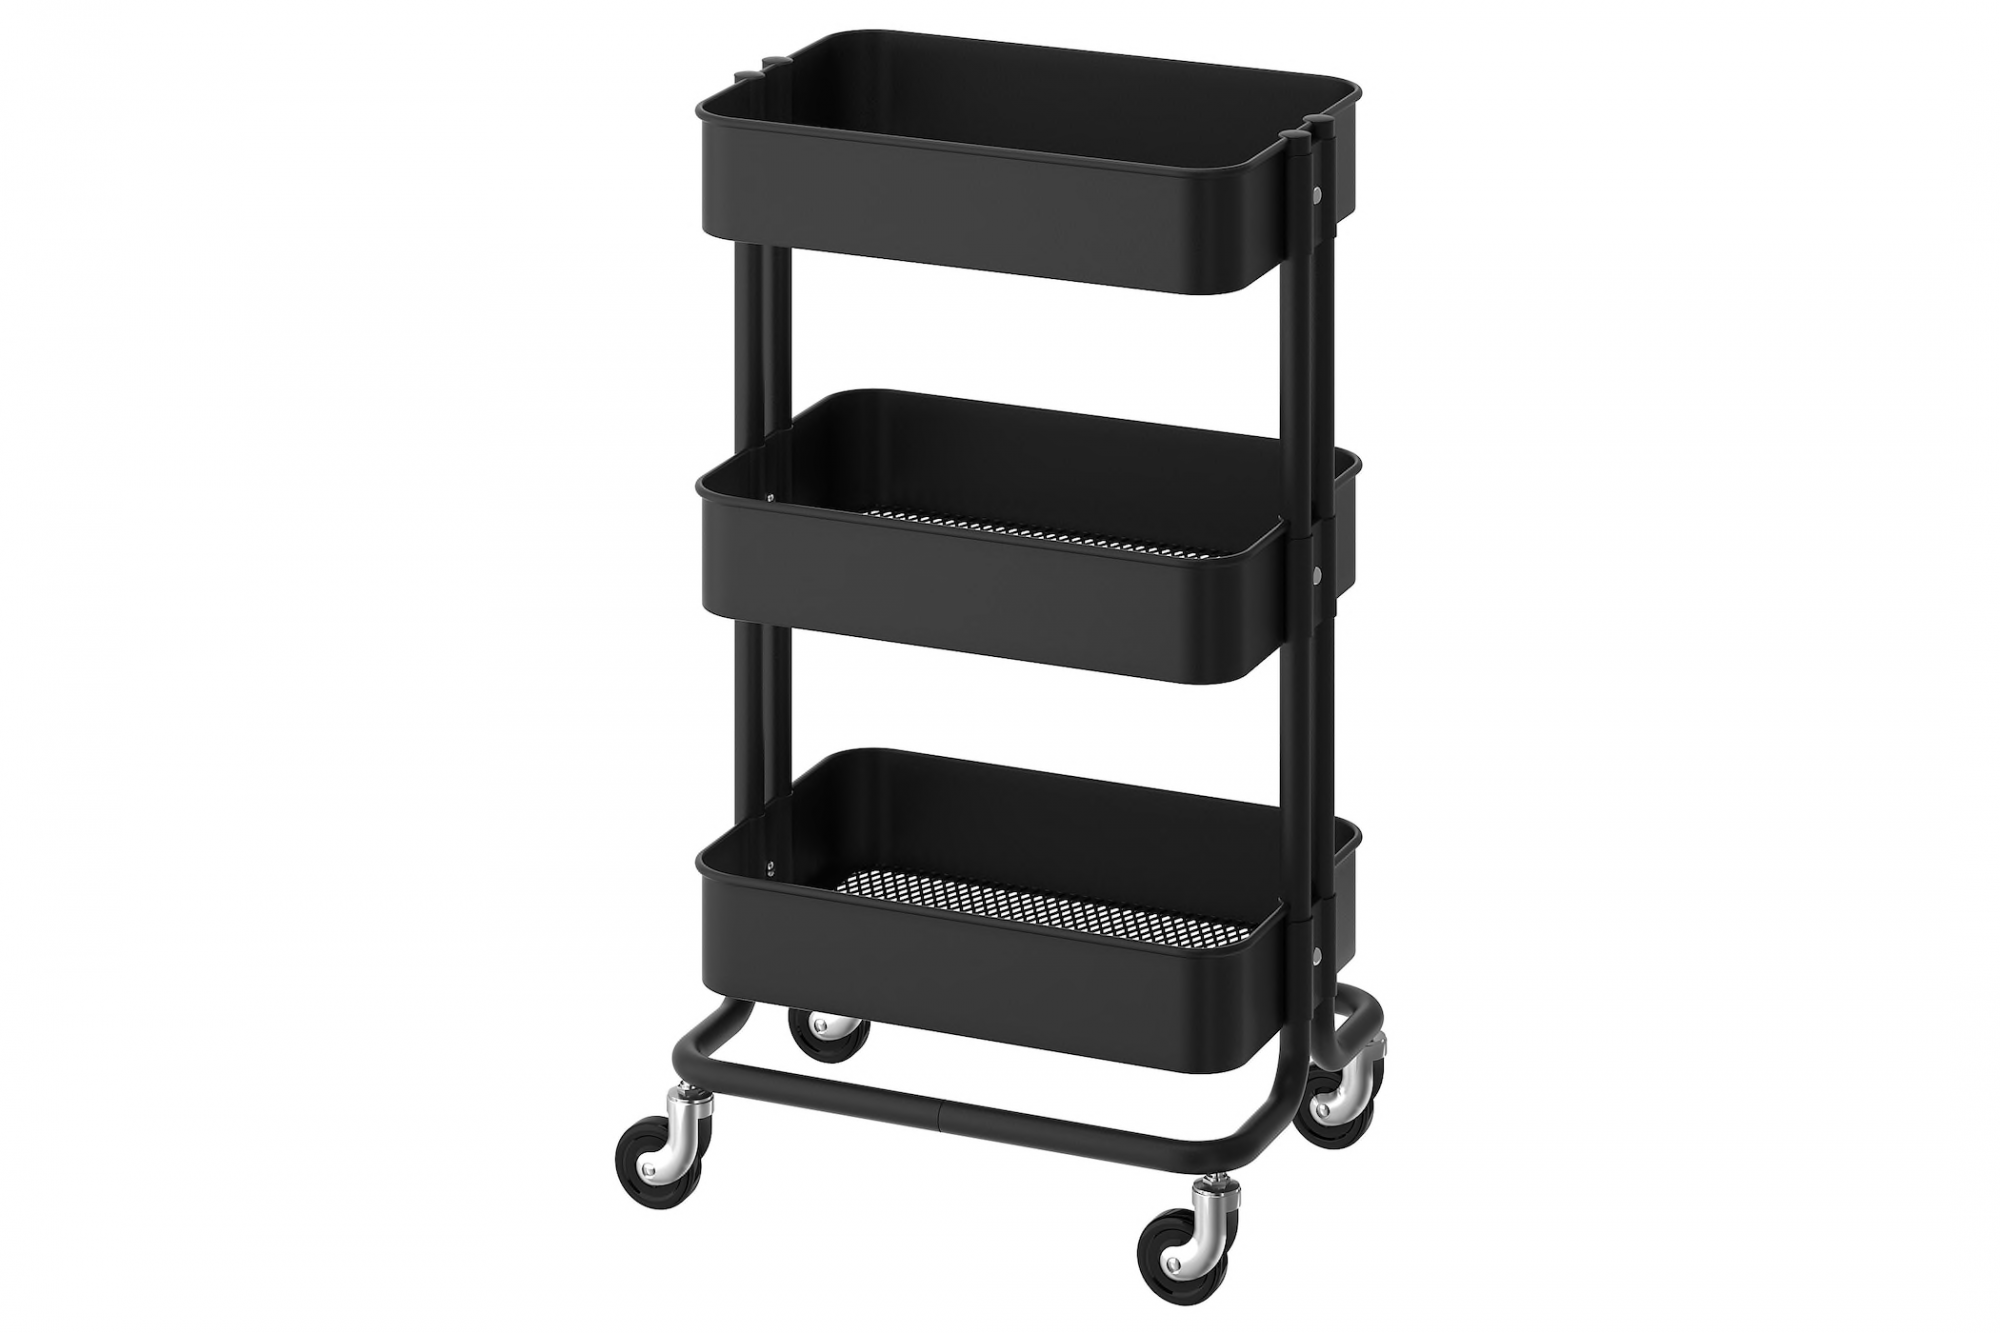 black IKEA rolling utility cart with three shelves